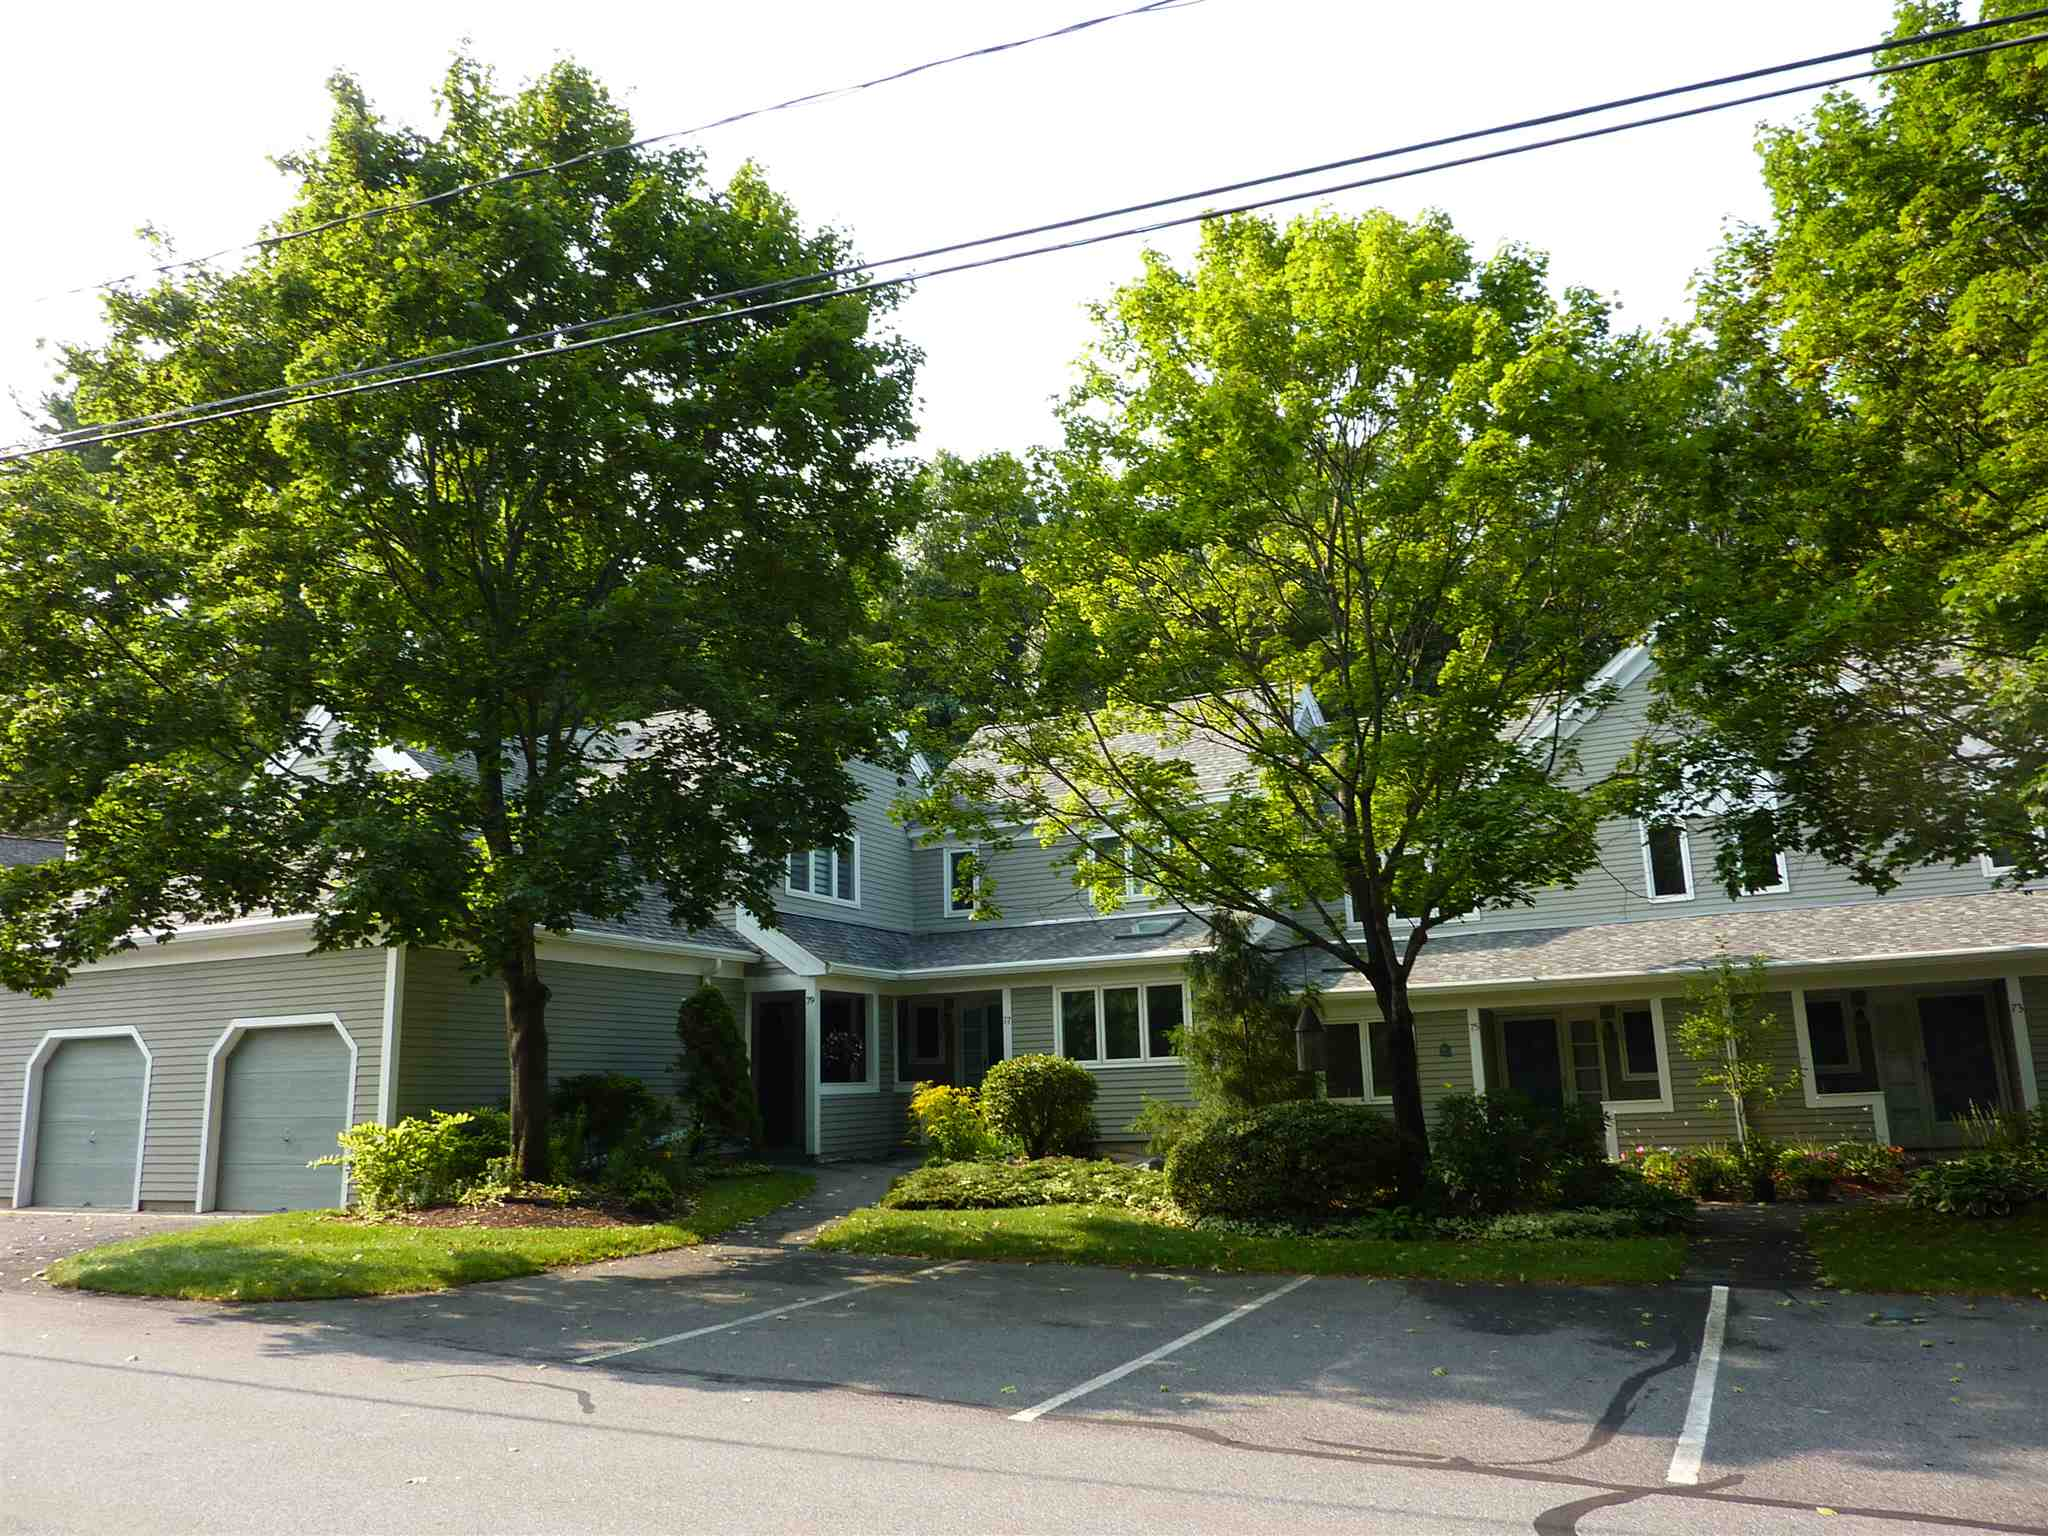 MLS 4829647: 79 Ledgewood Hills Drive-Unit 356, Nashua NH